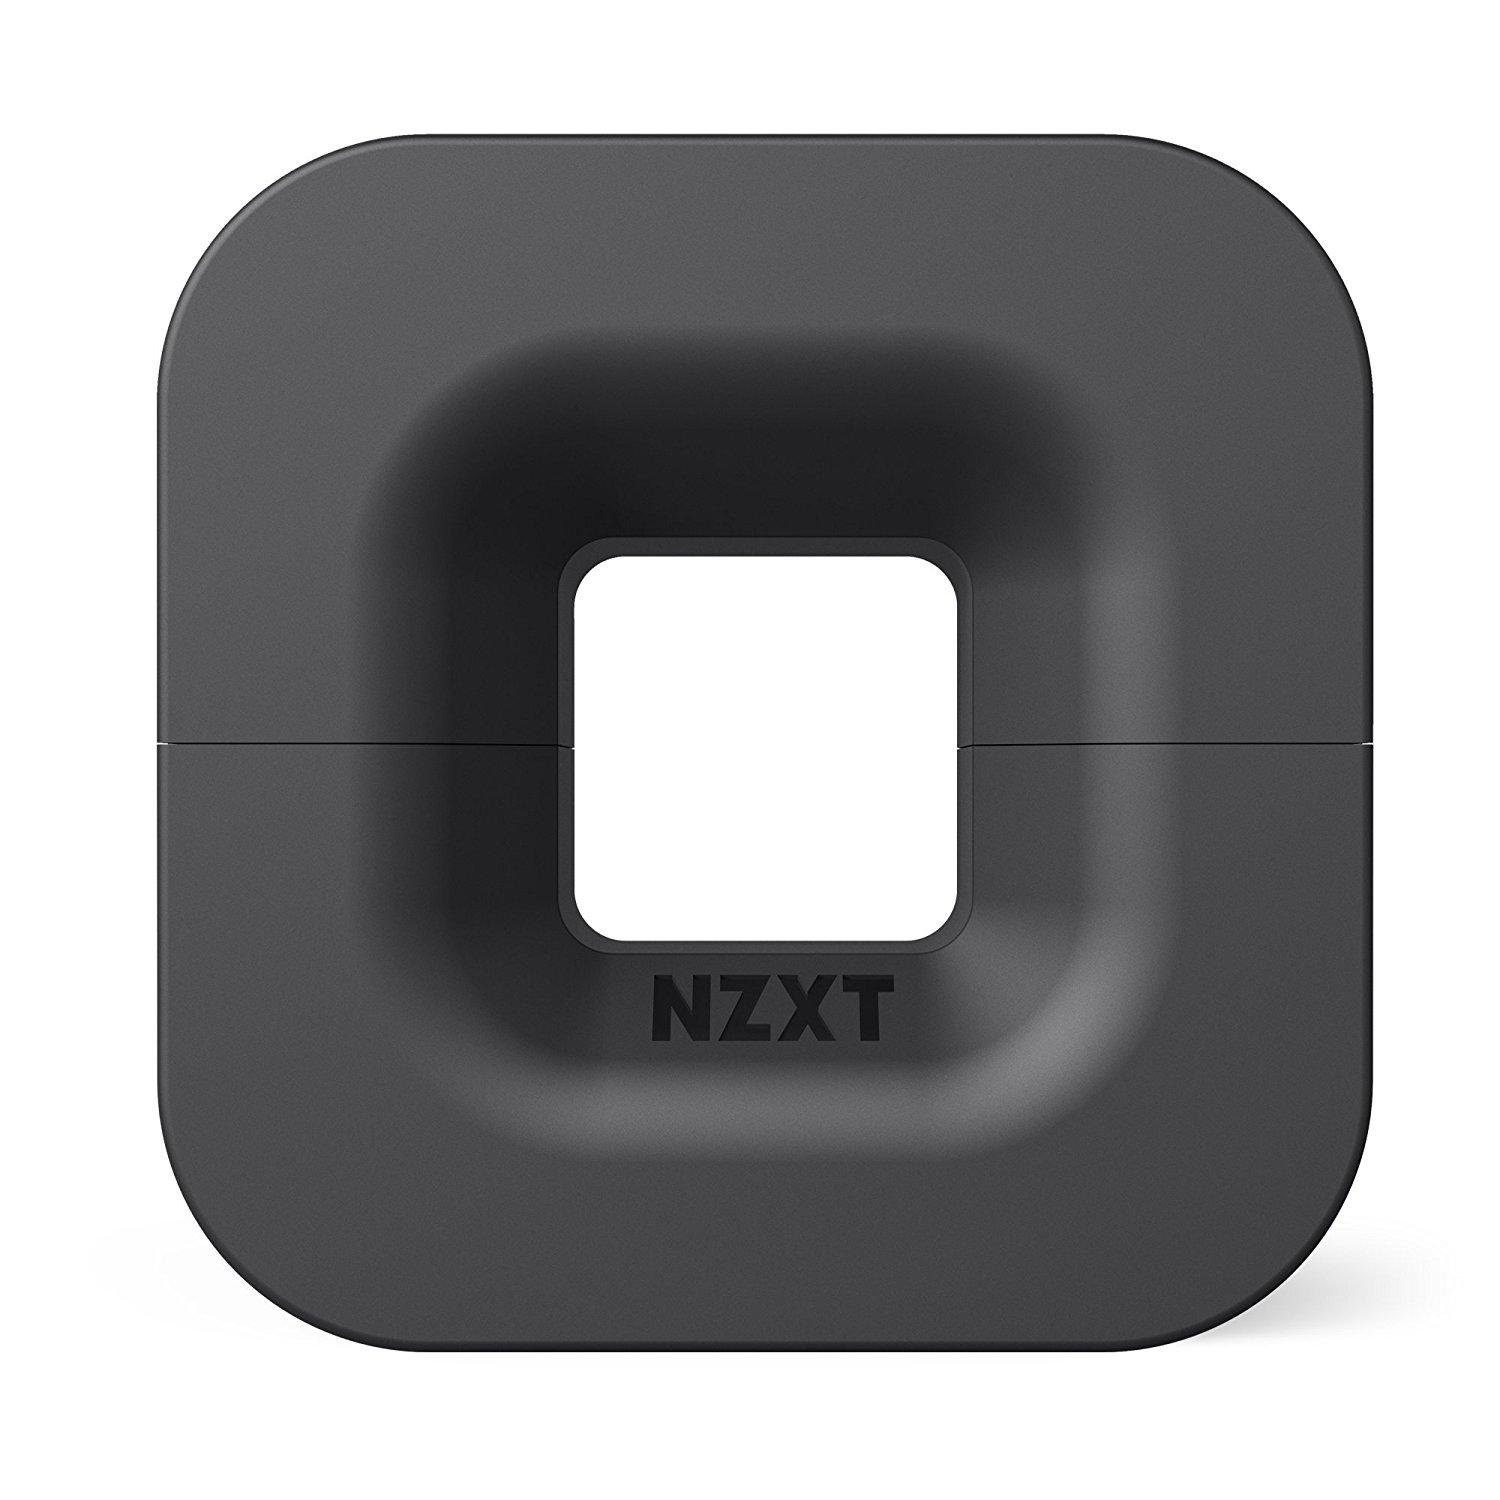 Поставка за слушалки NZXT Puck Black BA-PUCKR-B1